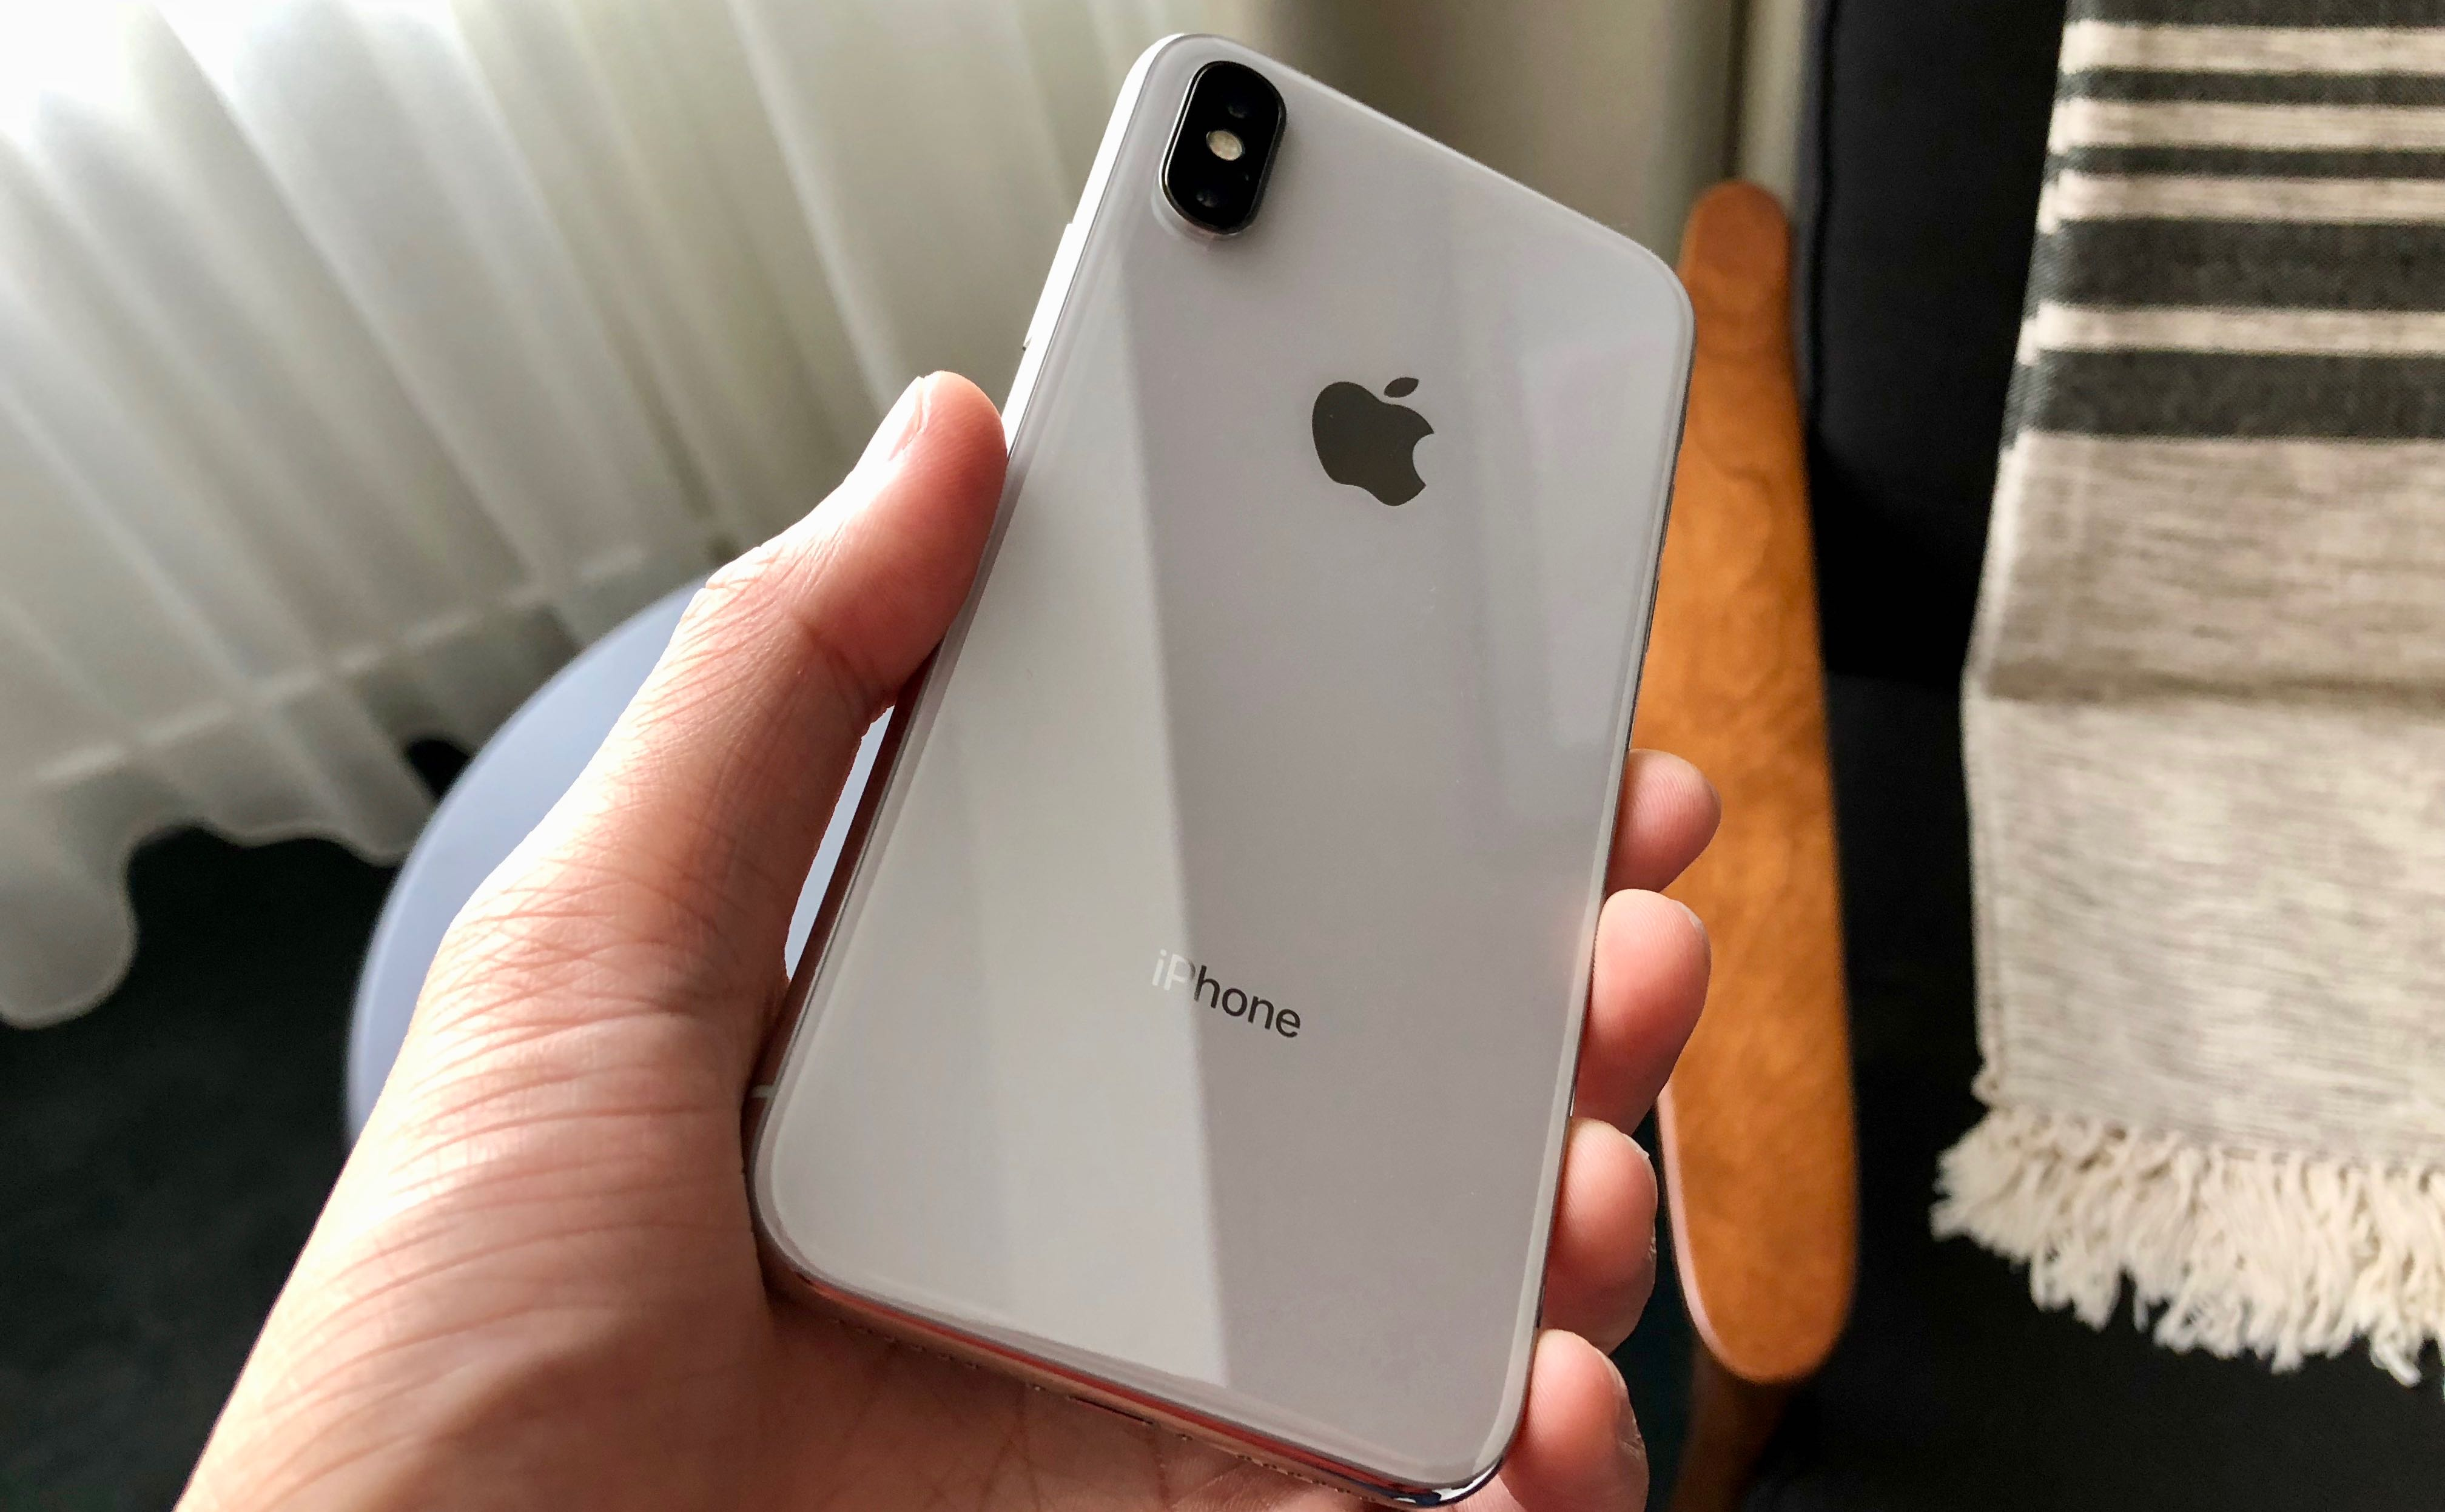 The back of the iPhone X. CITYNEWS/Winston Sih